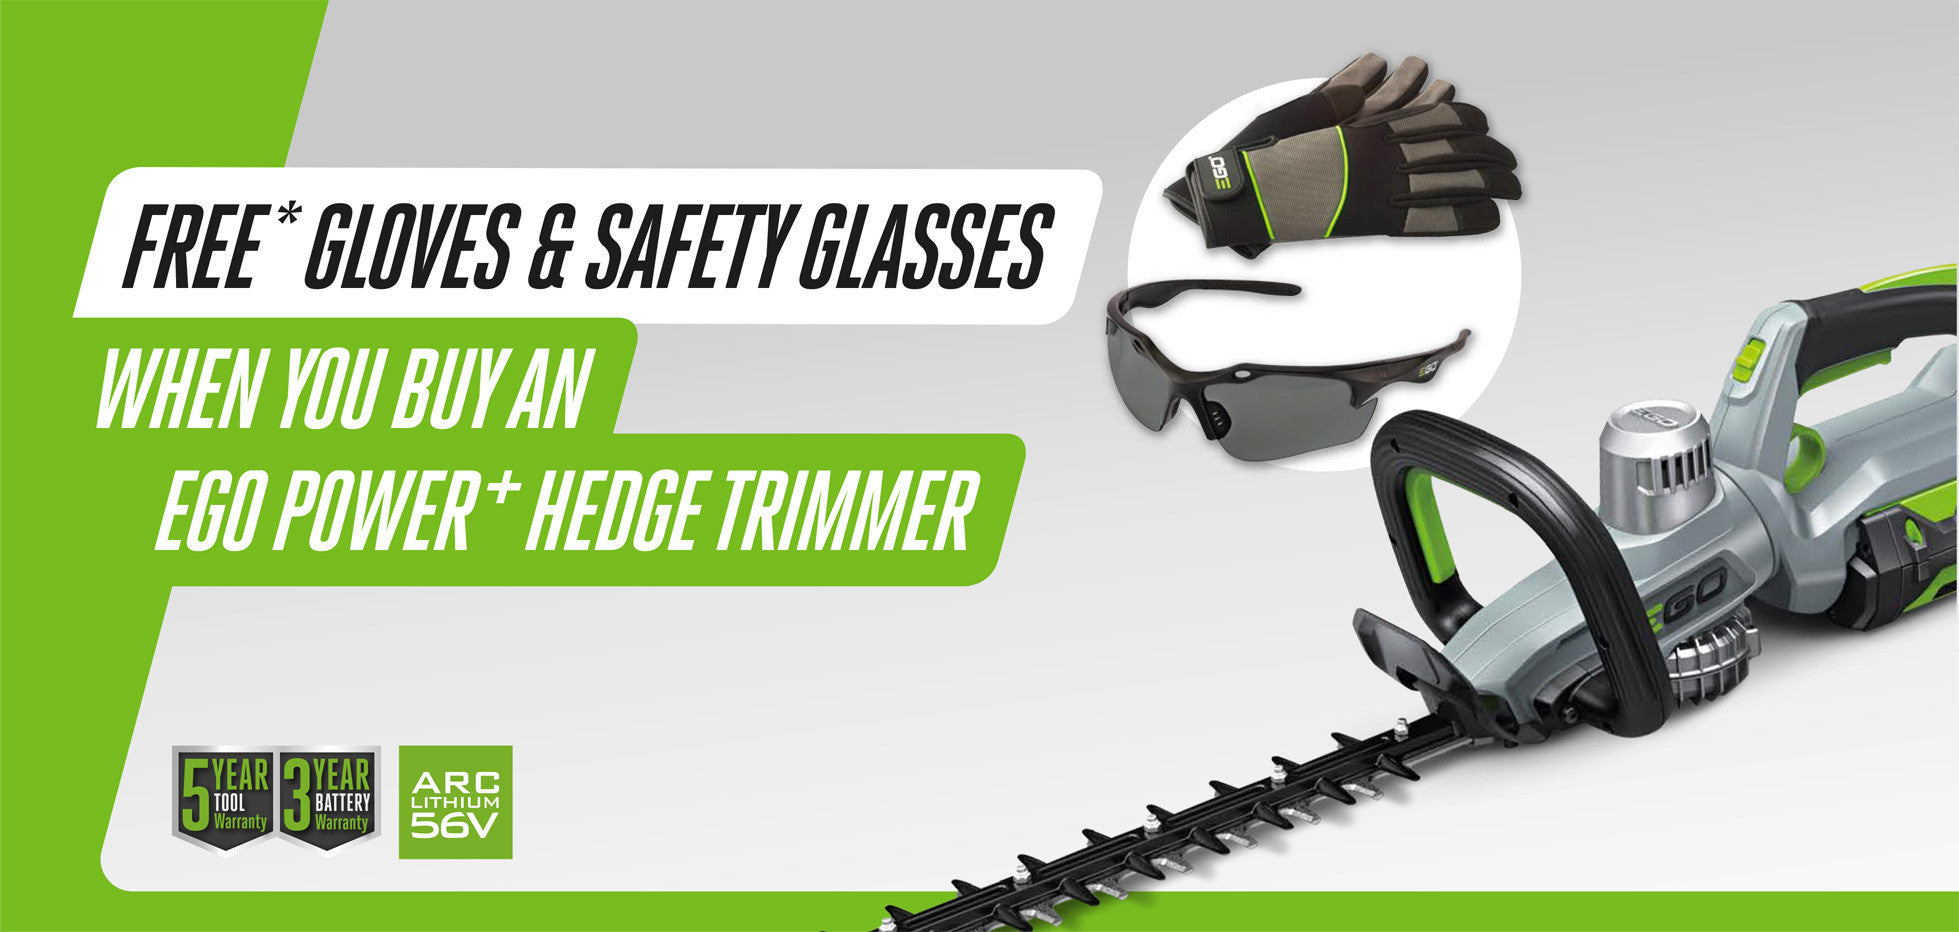 FREE* GLOVES & SAFETY GLASSES WHEN YOU BUY AN EGO POWER+ HEDGE TRIMMER